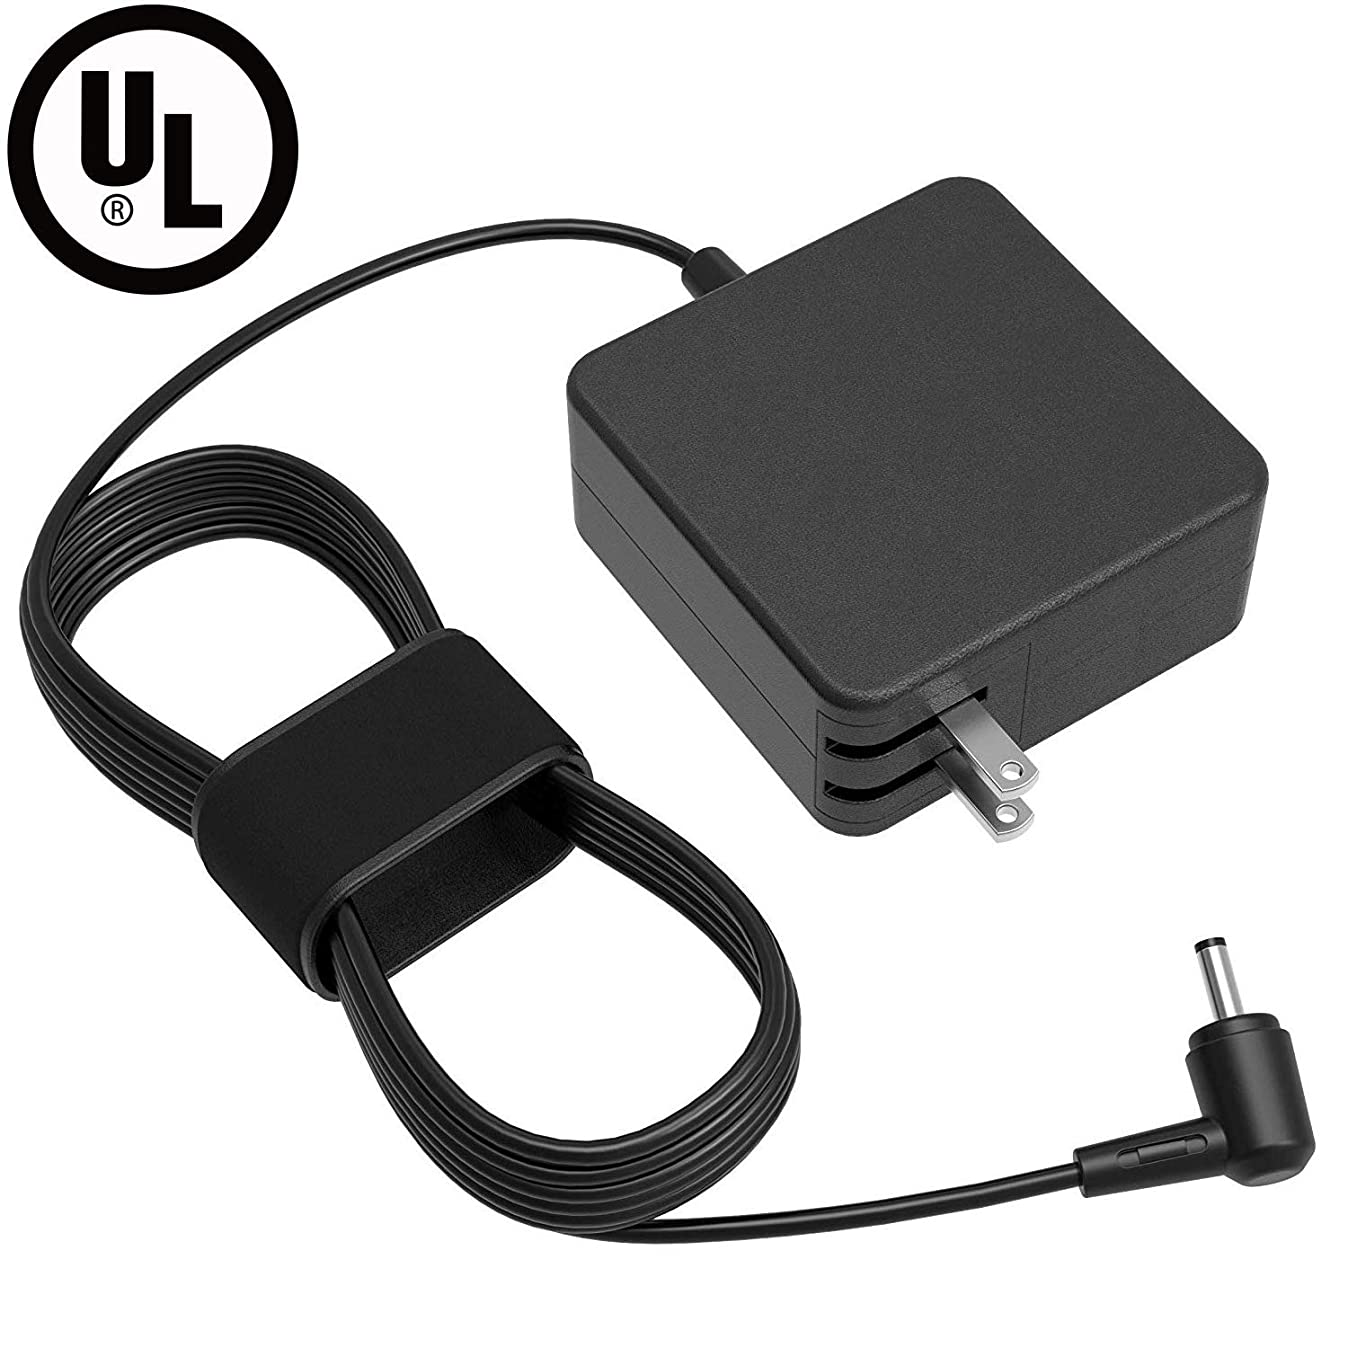 [UL Listed] 65W 45W AC Charger for Asus VivoBook S510UQ S510UN S510 S510U S510UA F510 F510UA F510U X510UQ X510UA X510U X510 TP410UA TP410UR TP410U TP410 S510UA-DB71 Laptop Power Supply Cord kpxirjqar